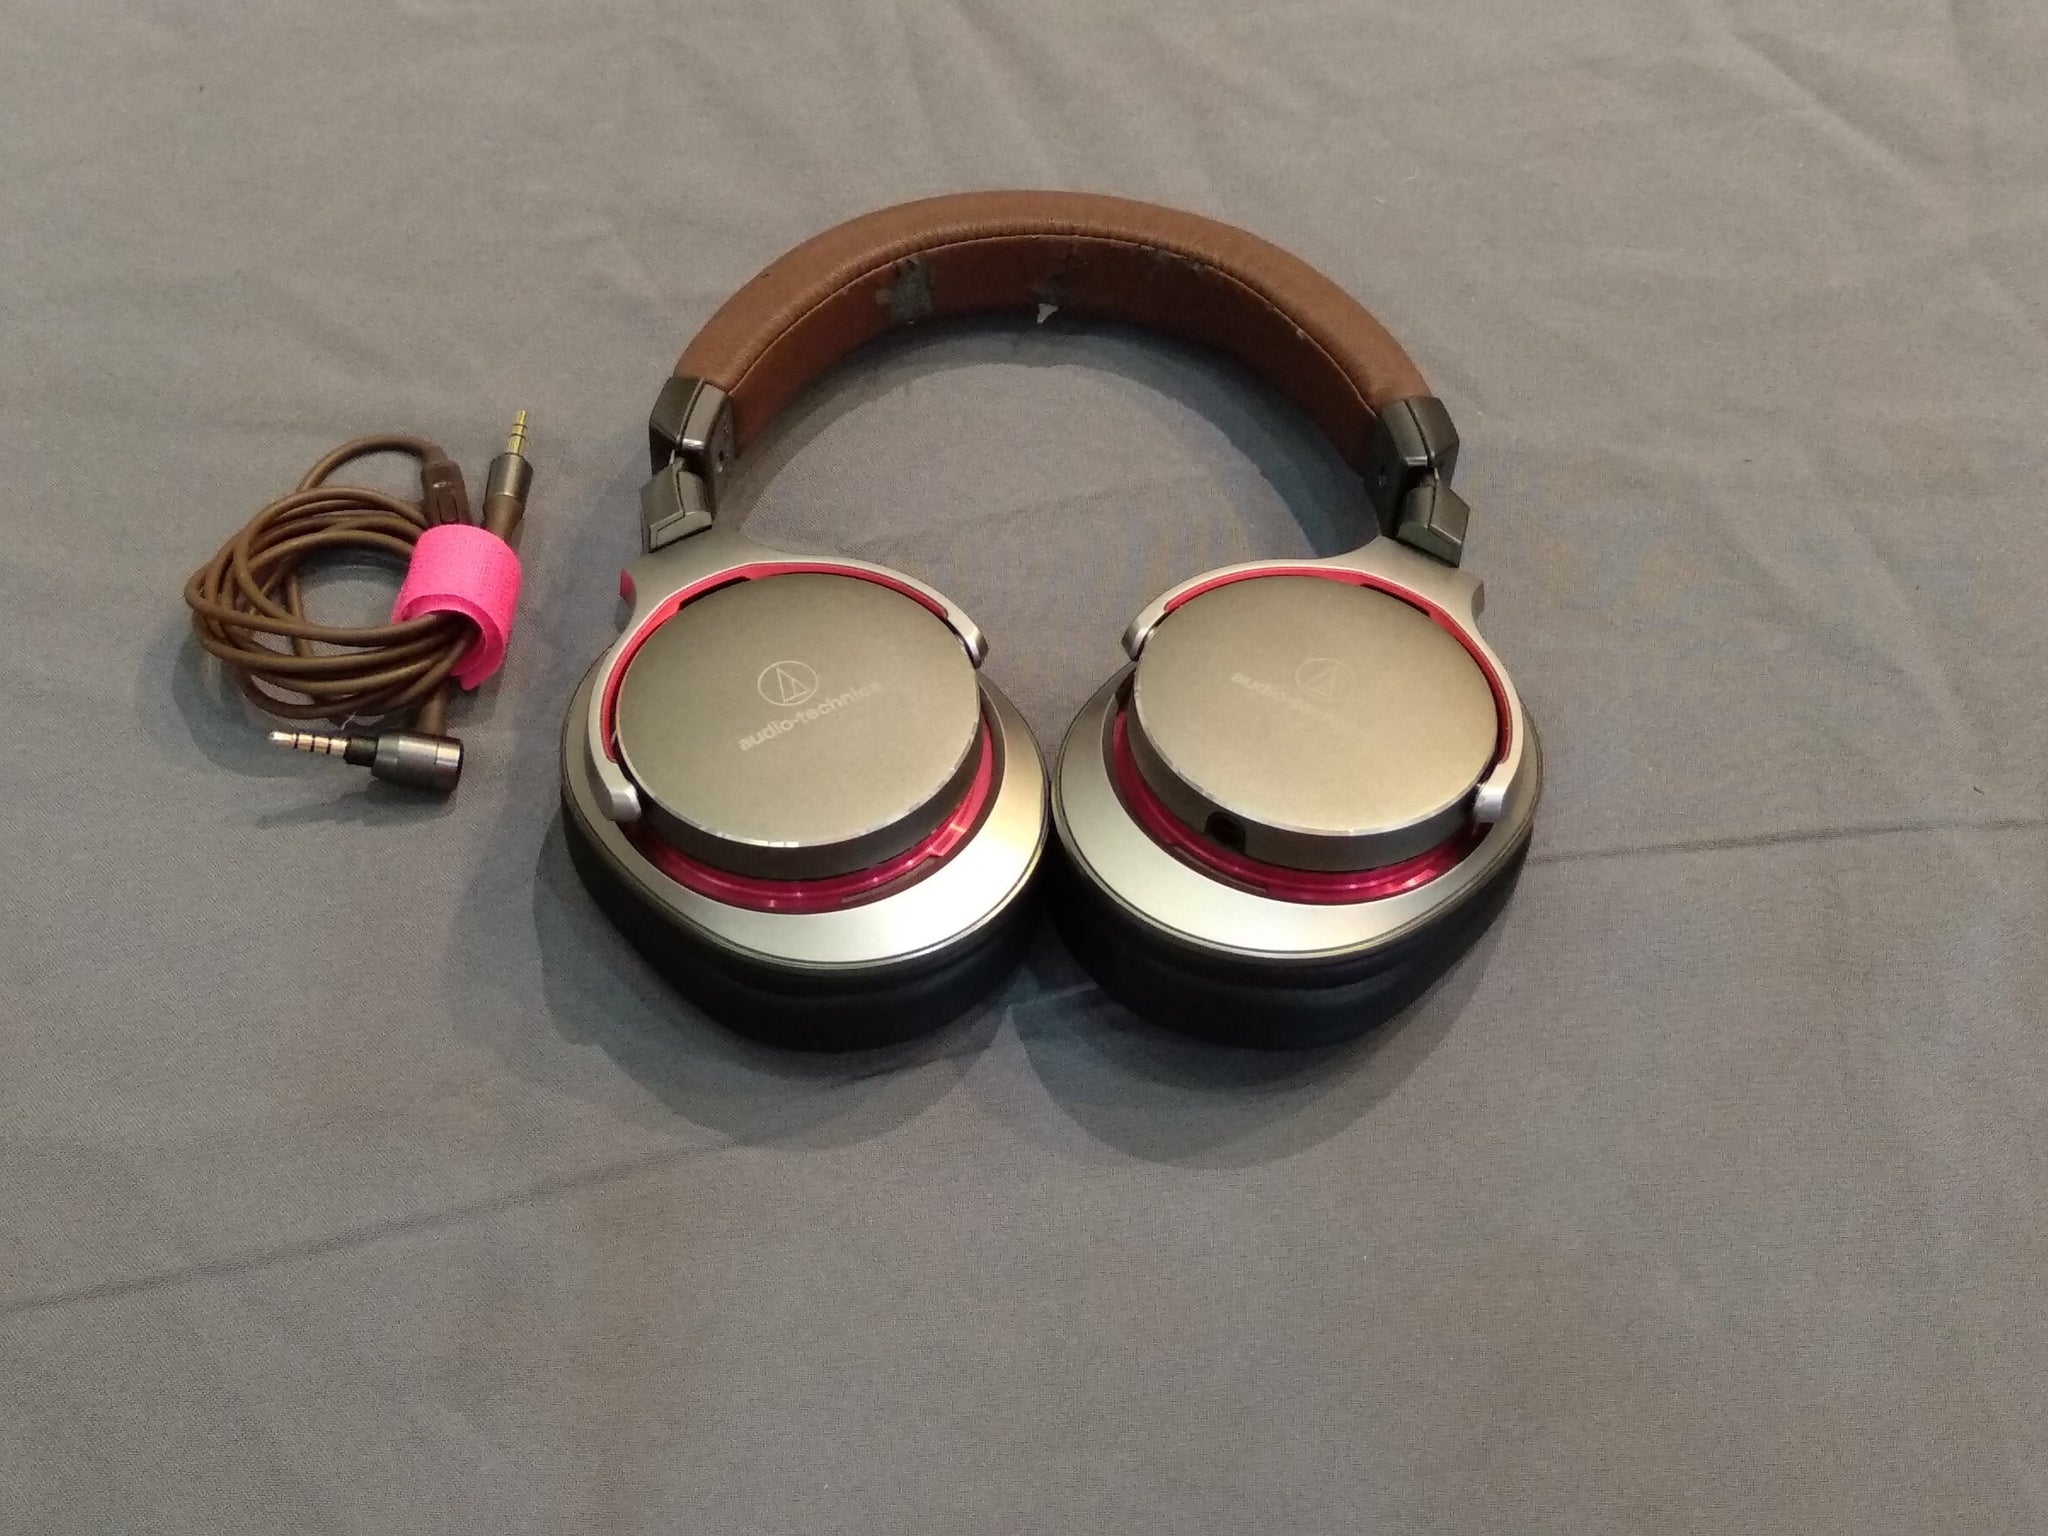 Audio Technica ATH-MSR7 GM Demo (Kuching) - Jaben - The Little Headphone Store